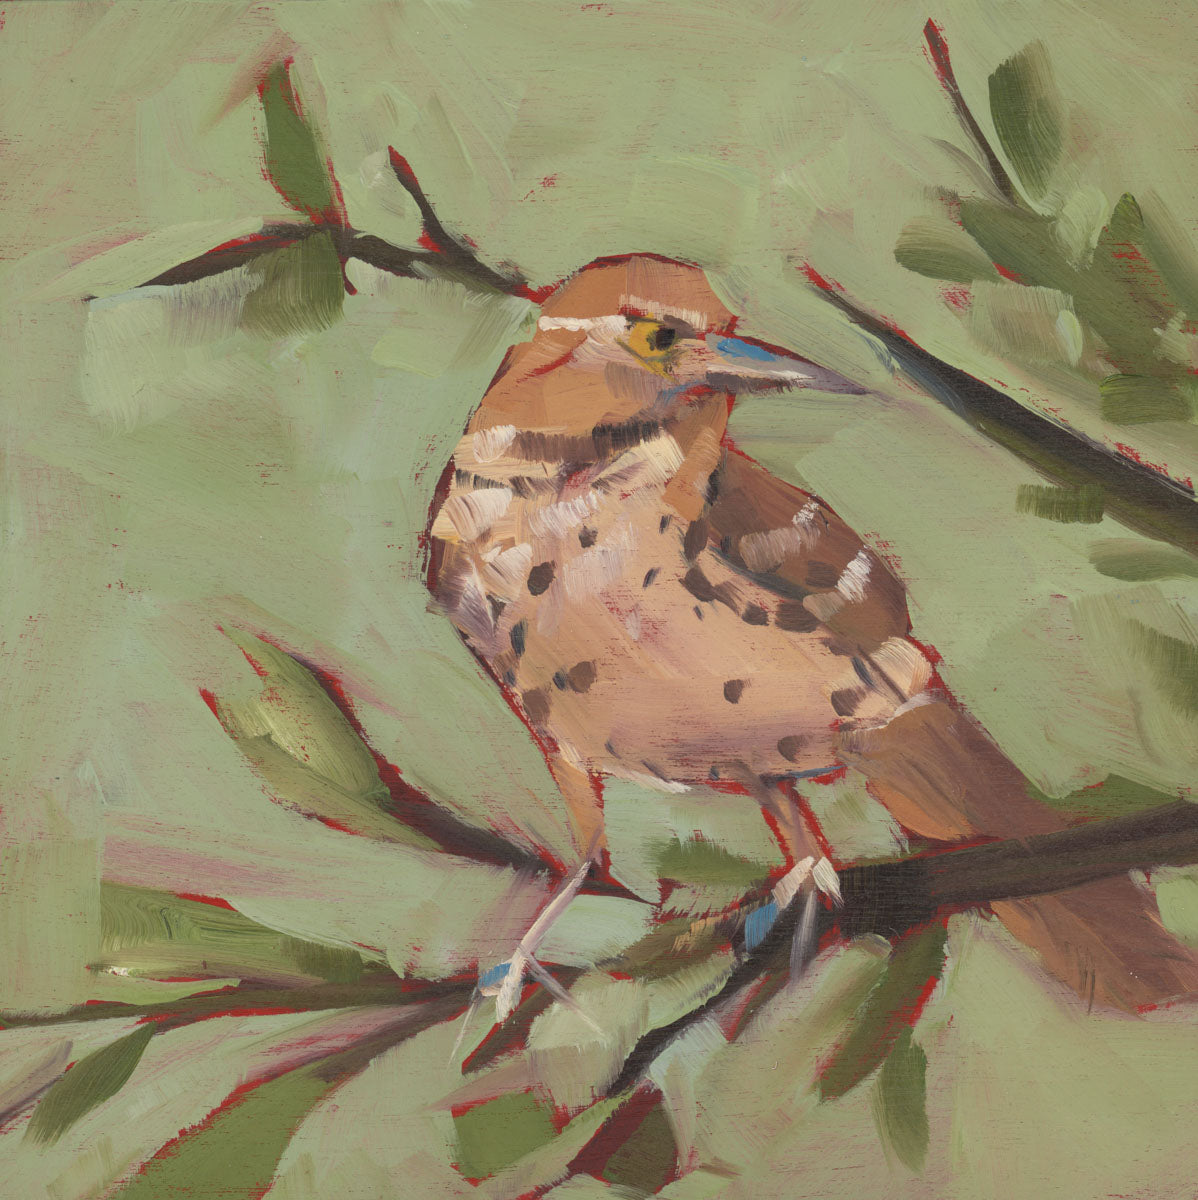 1384: Brown Thrasher on the Watch